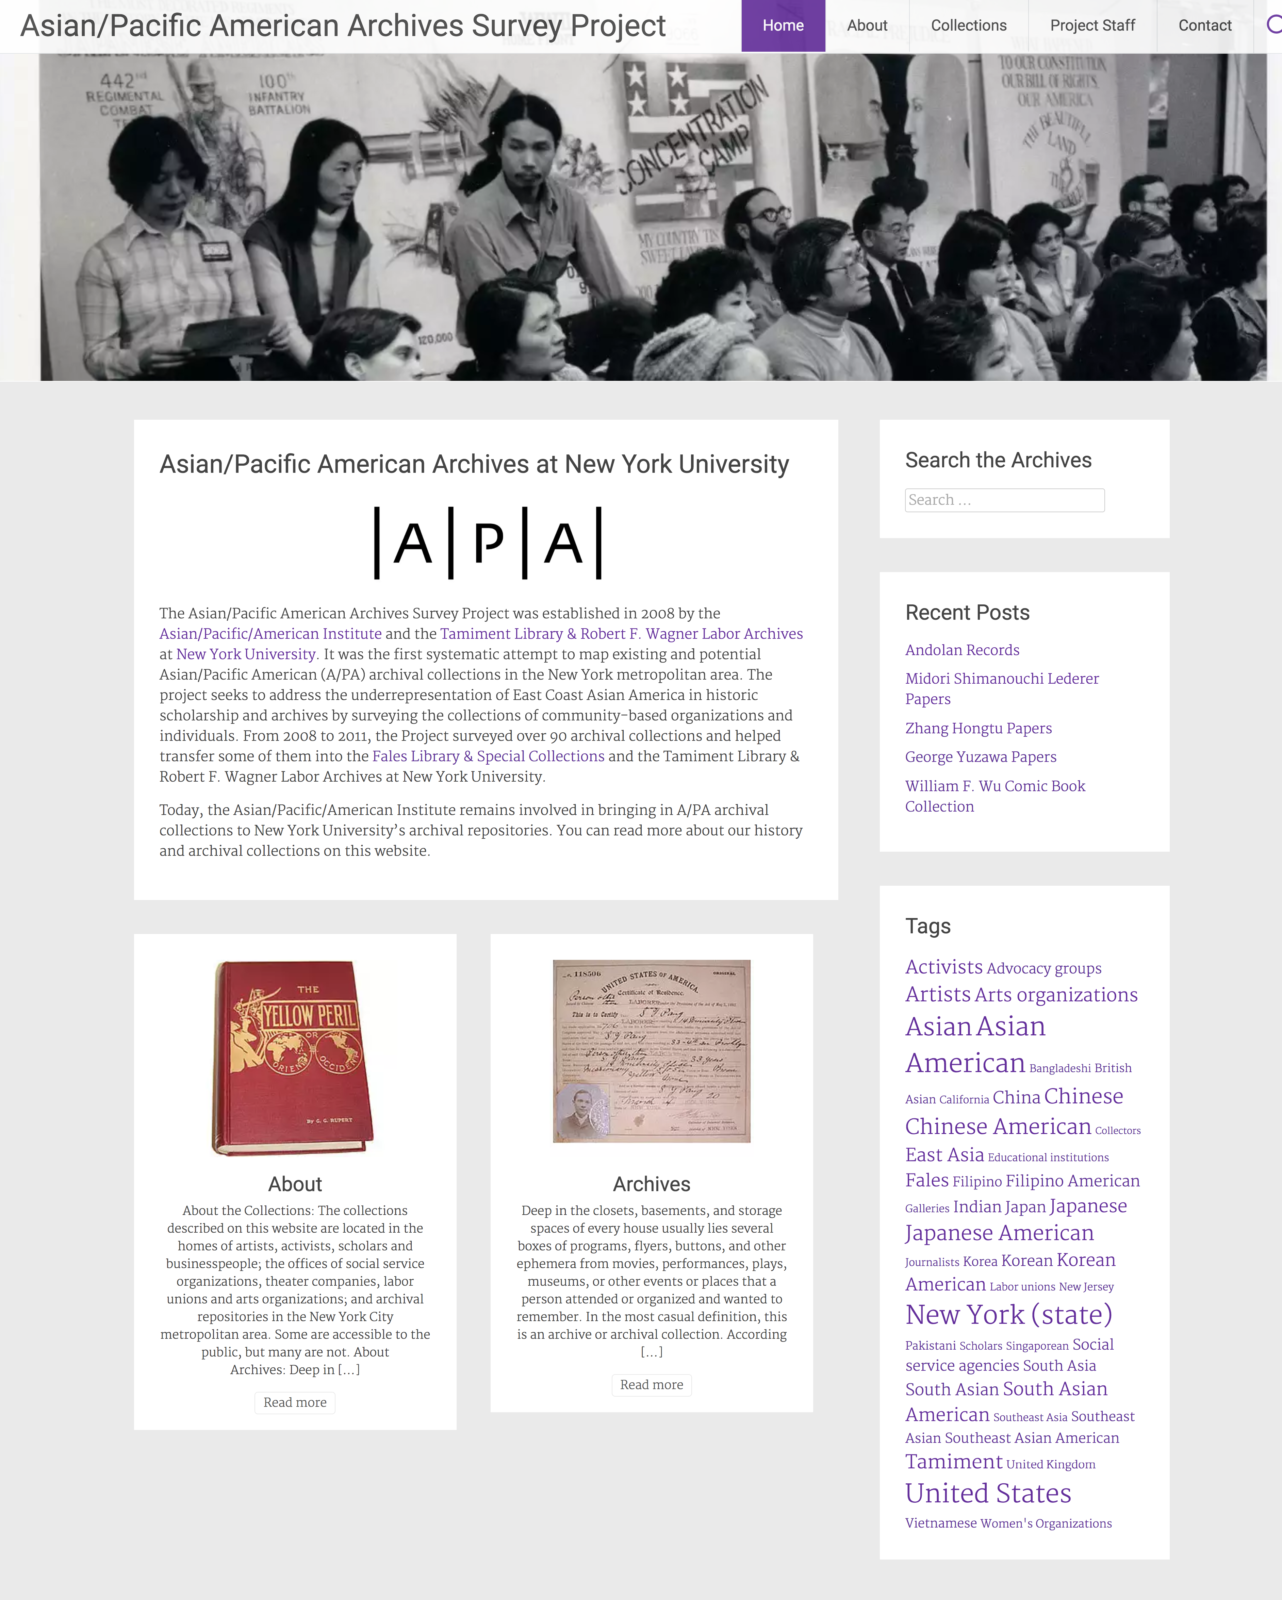 Screen shot of Asian/Pacific Archives Survey Project website